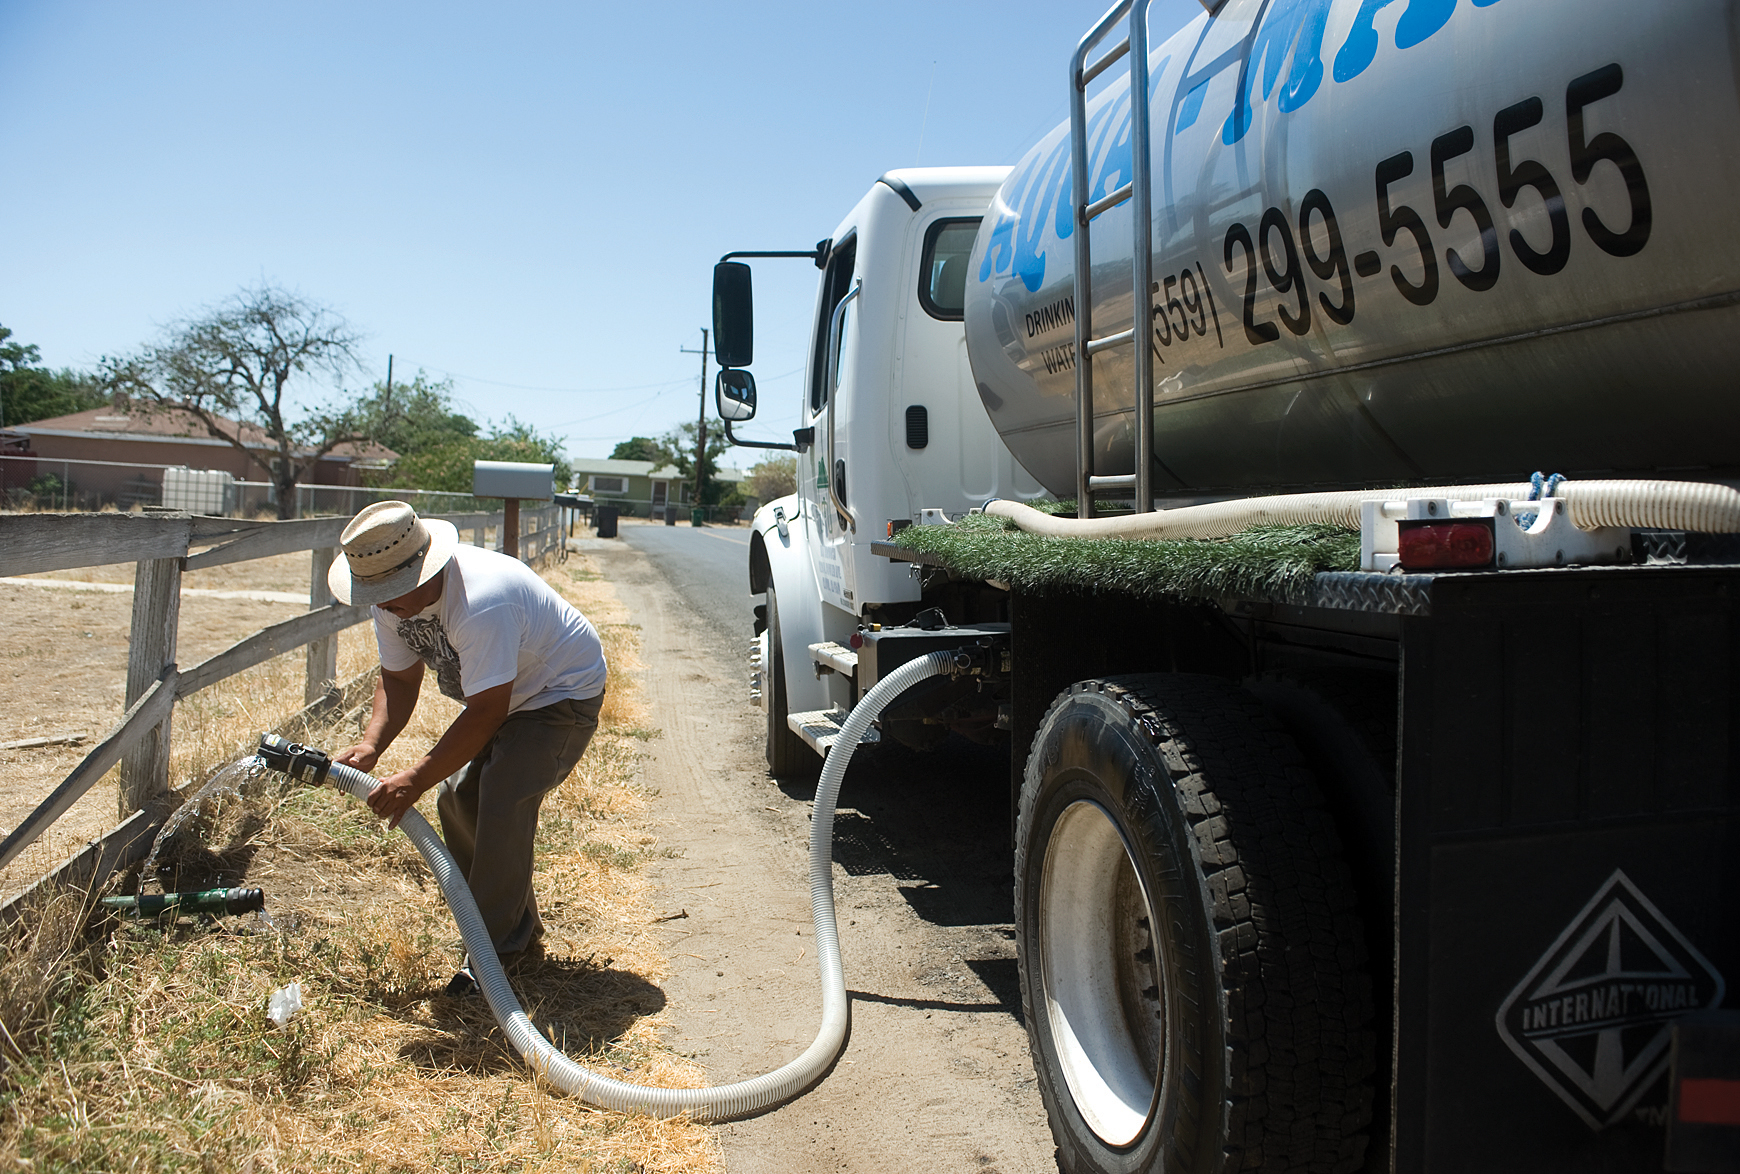 Man uses water truck in East Porterville, California